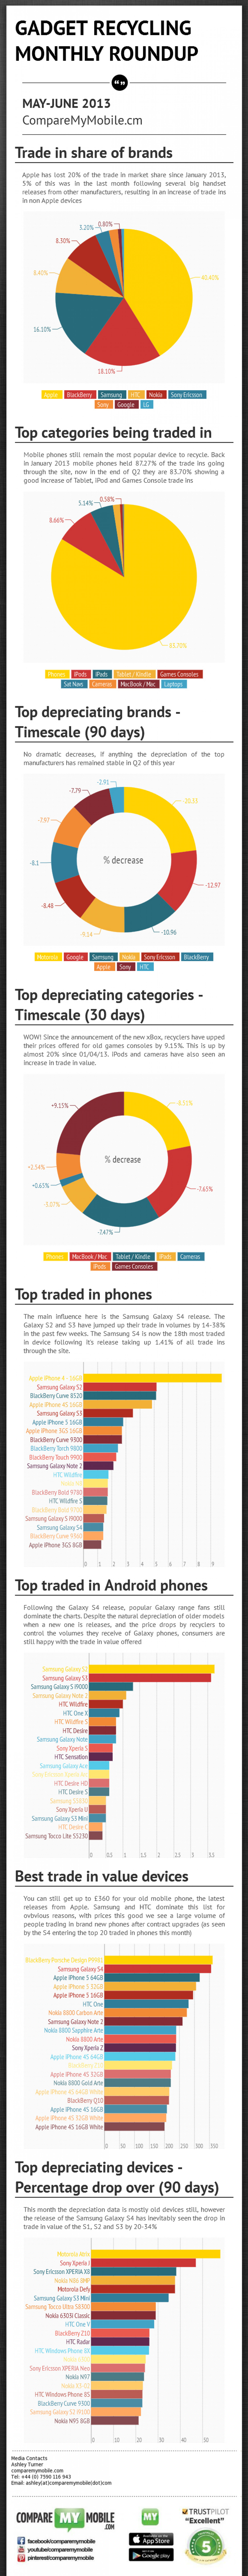 Phone Recycling Data: Round up of May 2013 Infographic